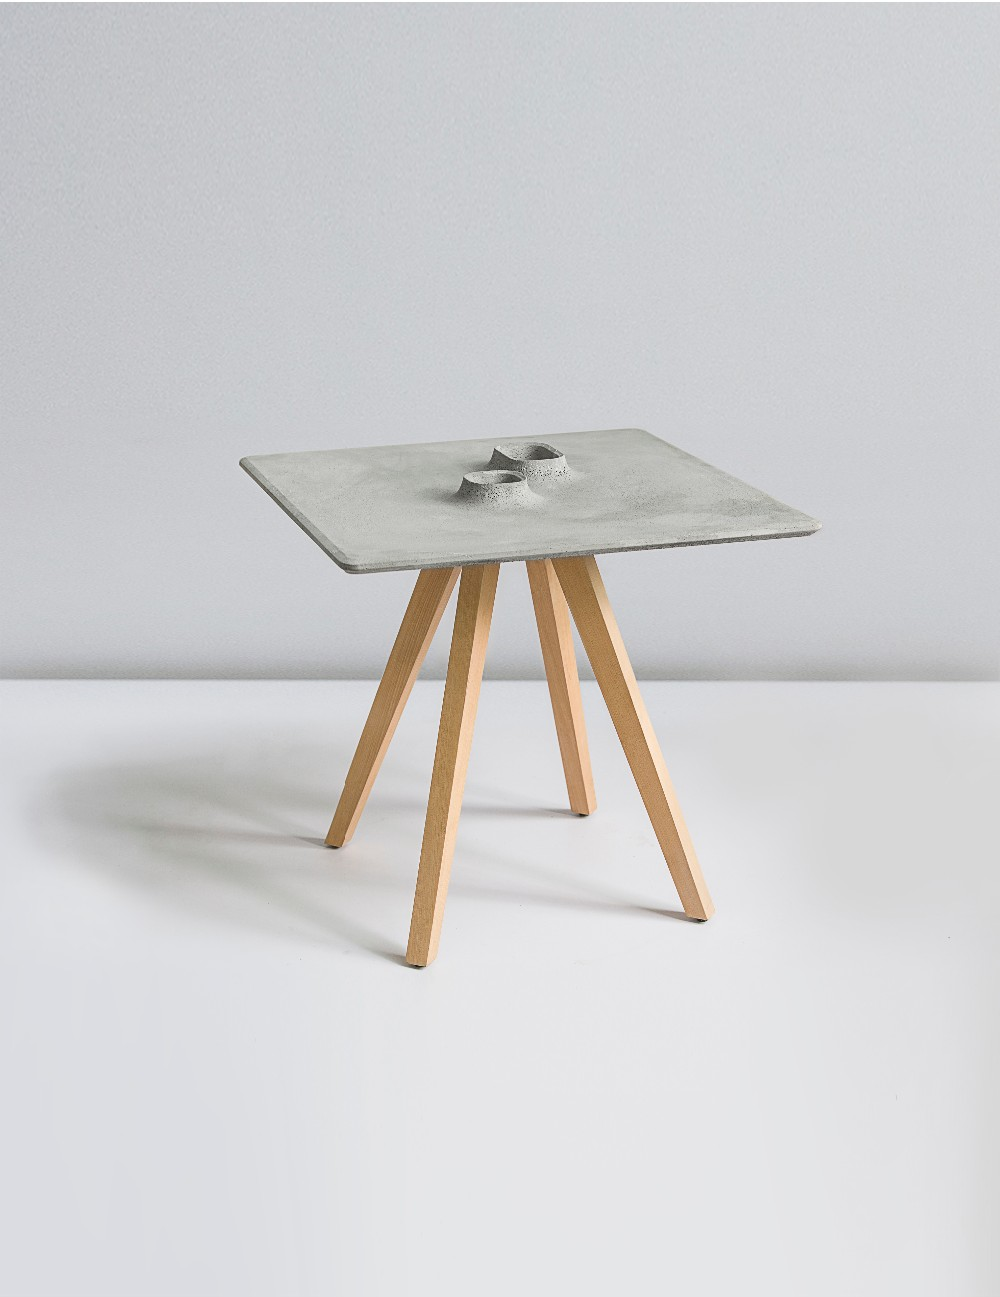 Sheng Table Square Table cement product design by BENTU coffee table